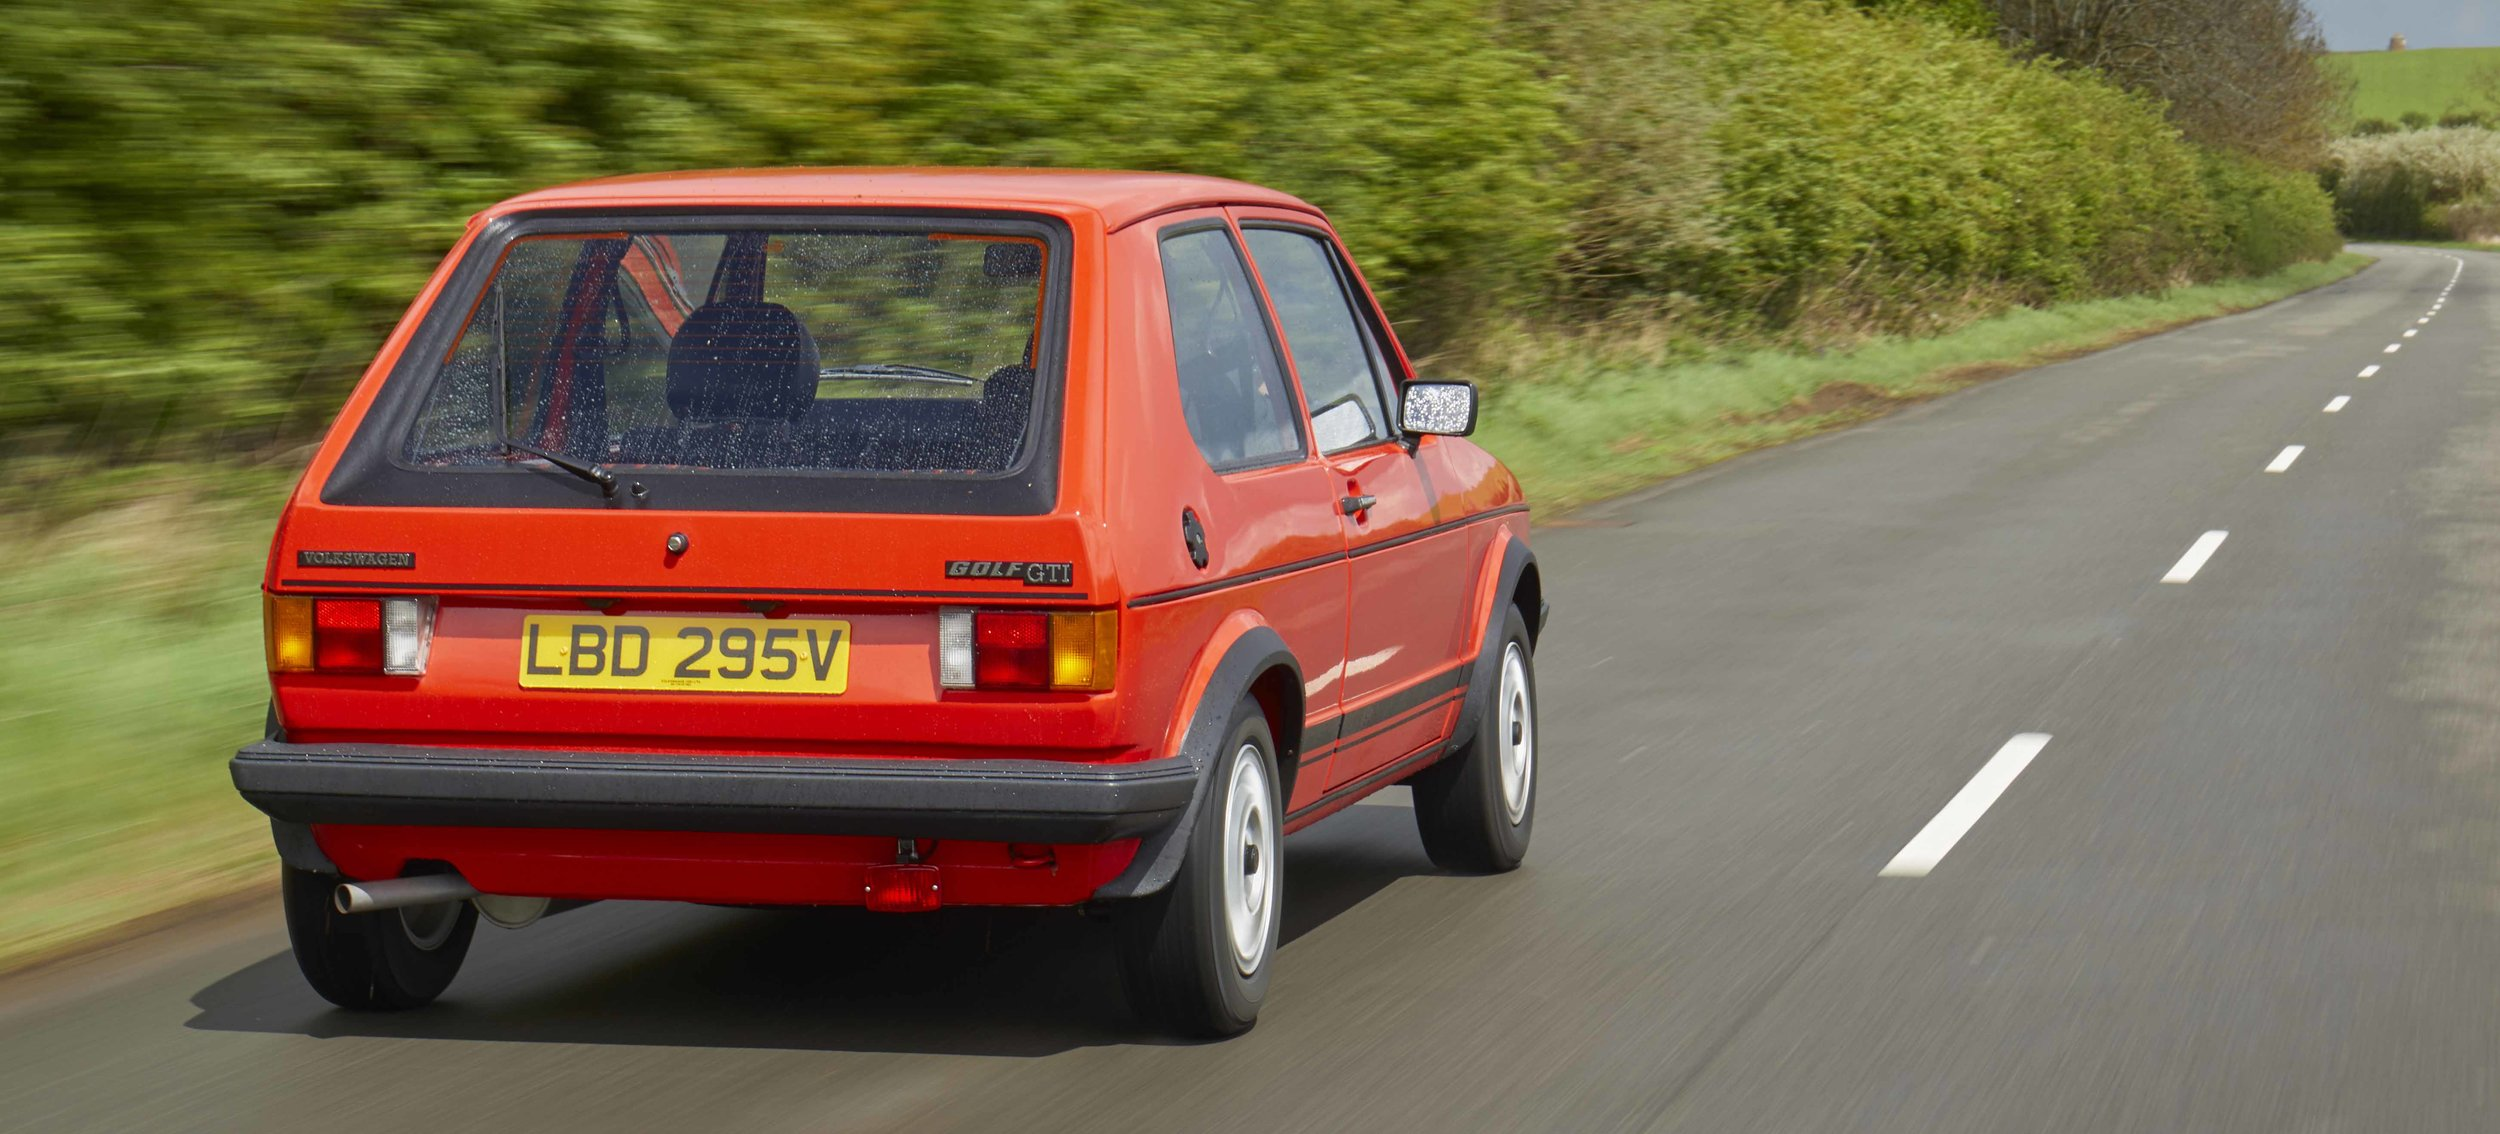 When one of the very first five-speed Golf GTi 1.6s became available, an ex-press fleet car originally owned by Volkswagen Audi Group UK, Graham Welch's interest was fiercely piqued. The five-speed gearbox arrived in late 1979, the first year in which GTIs were officially available in the UK (the four-speeder was launched here in June of that year). What's more, it seems none of the few four-speed press cars are still around. Which means that LBD 295V is now almost certainly the earliest GTI MkI press car in existence as the Golf GTI breed celebrates its 40th UK anniversary.  'I heard about it from a journalist at a classic car show,' says Graham, who knew that he had to have it. 'It had sat for 20 years, but I managed to get it going in September 2017 and MOT'd in the December so I could use it and know what it was like before I took it apart'. When he did, it became far more than just your average restoration…